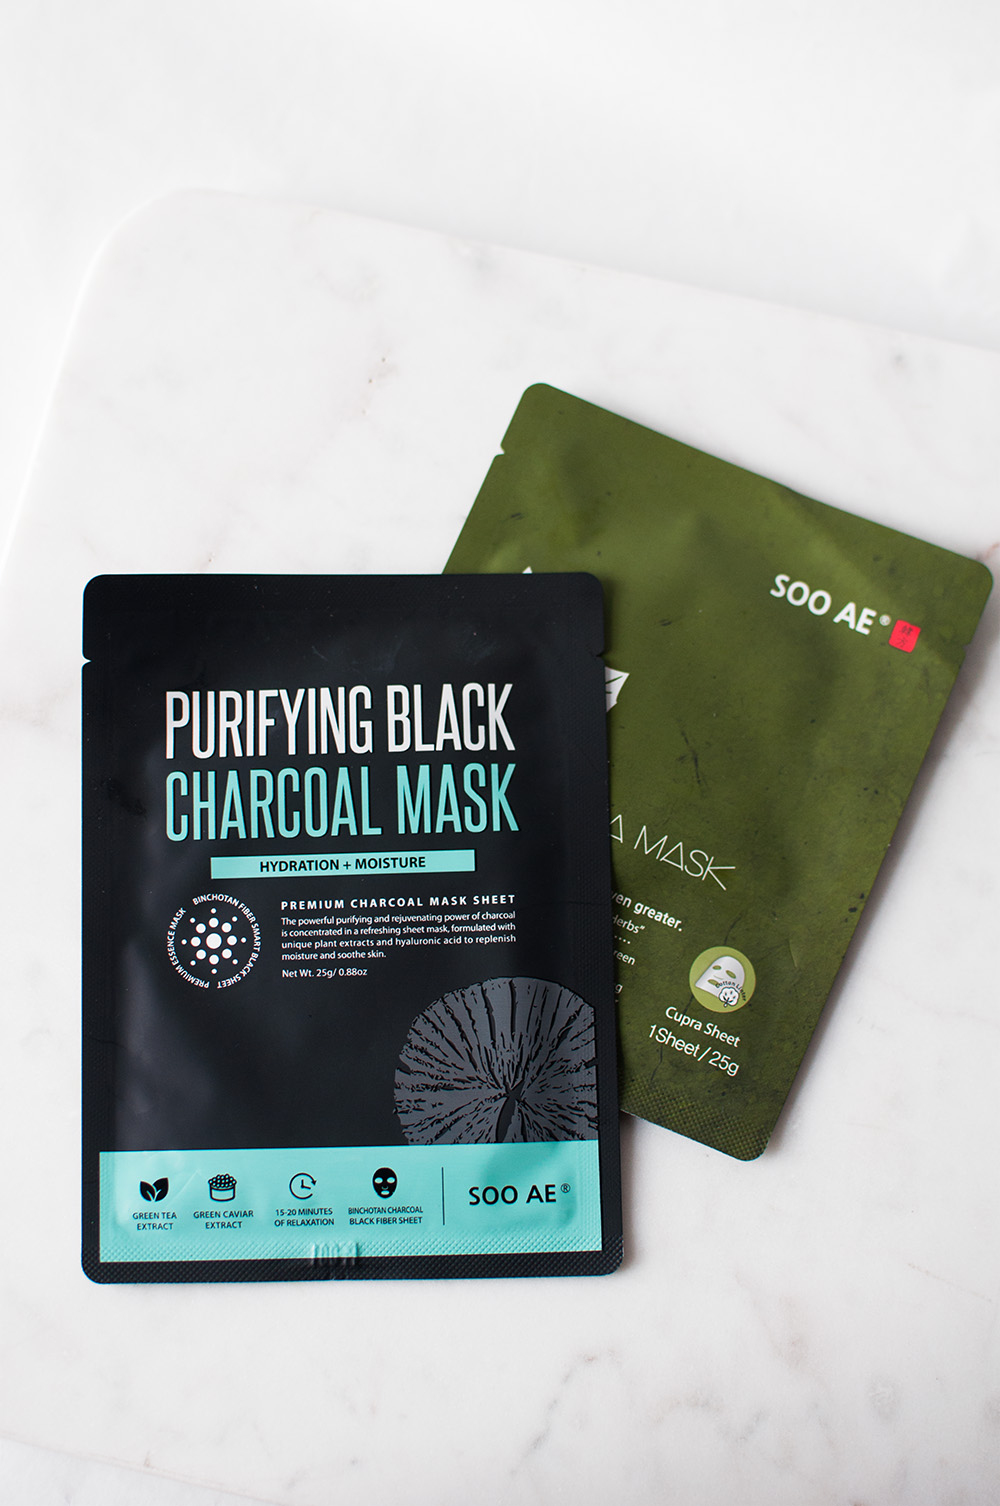 soo ae sheet masks, soo ae sheet masks usa, wal-mart sheet masks, wal-mart k beauty